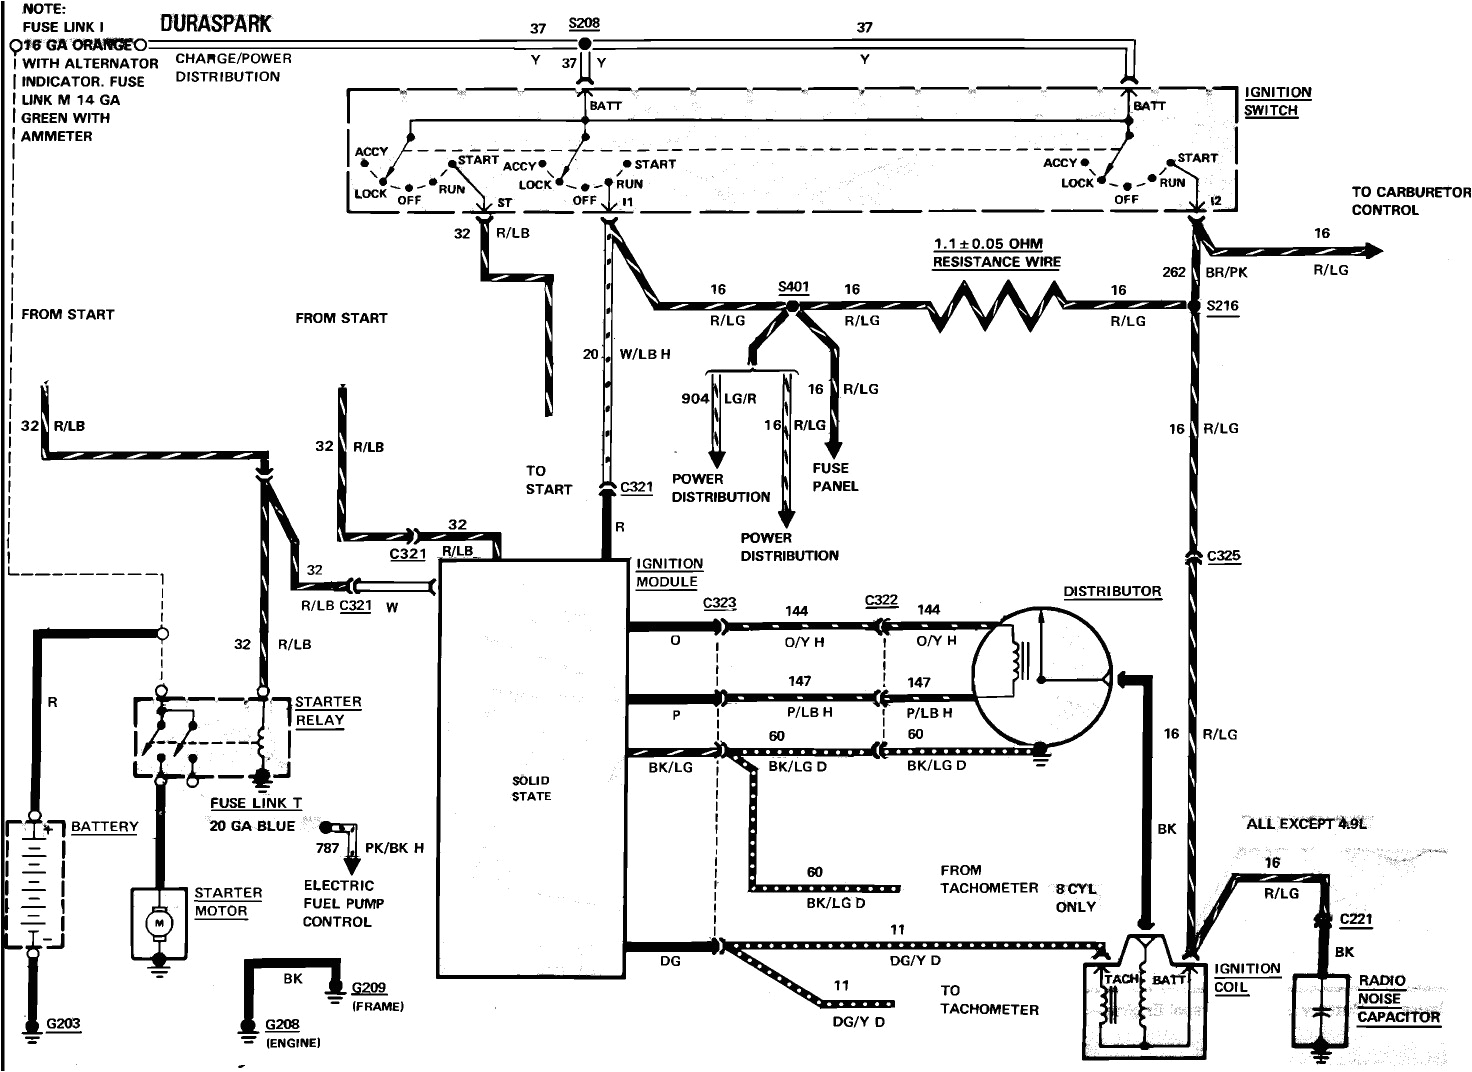 wiring diagram for 1984 ford mustang wiring diagram expert 1984 ford wiring diagram 1984 ford wiring diagram